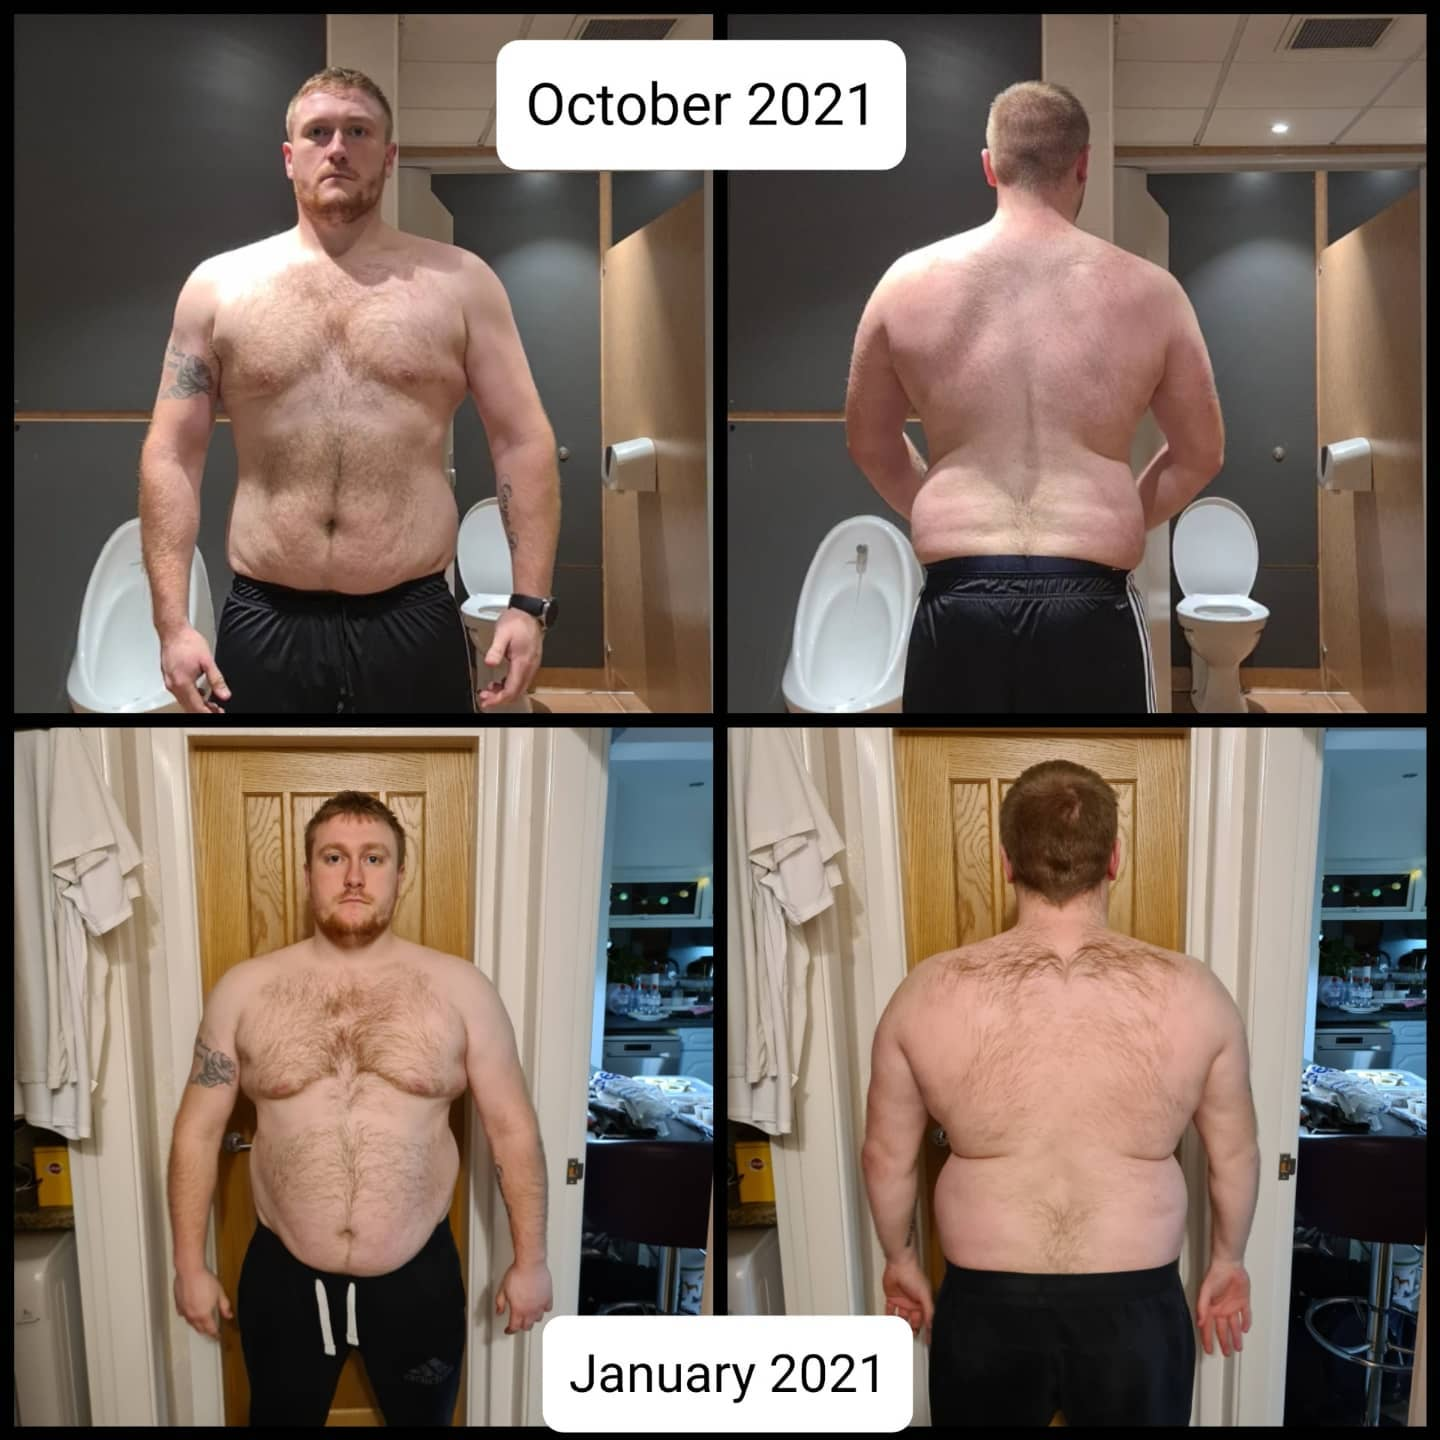 5'10 Male Before and After 58 lbs Weight Loss 269 lbs to 211 lbs